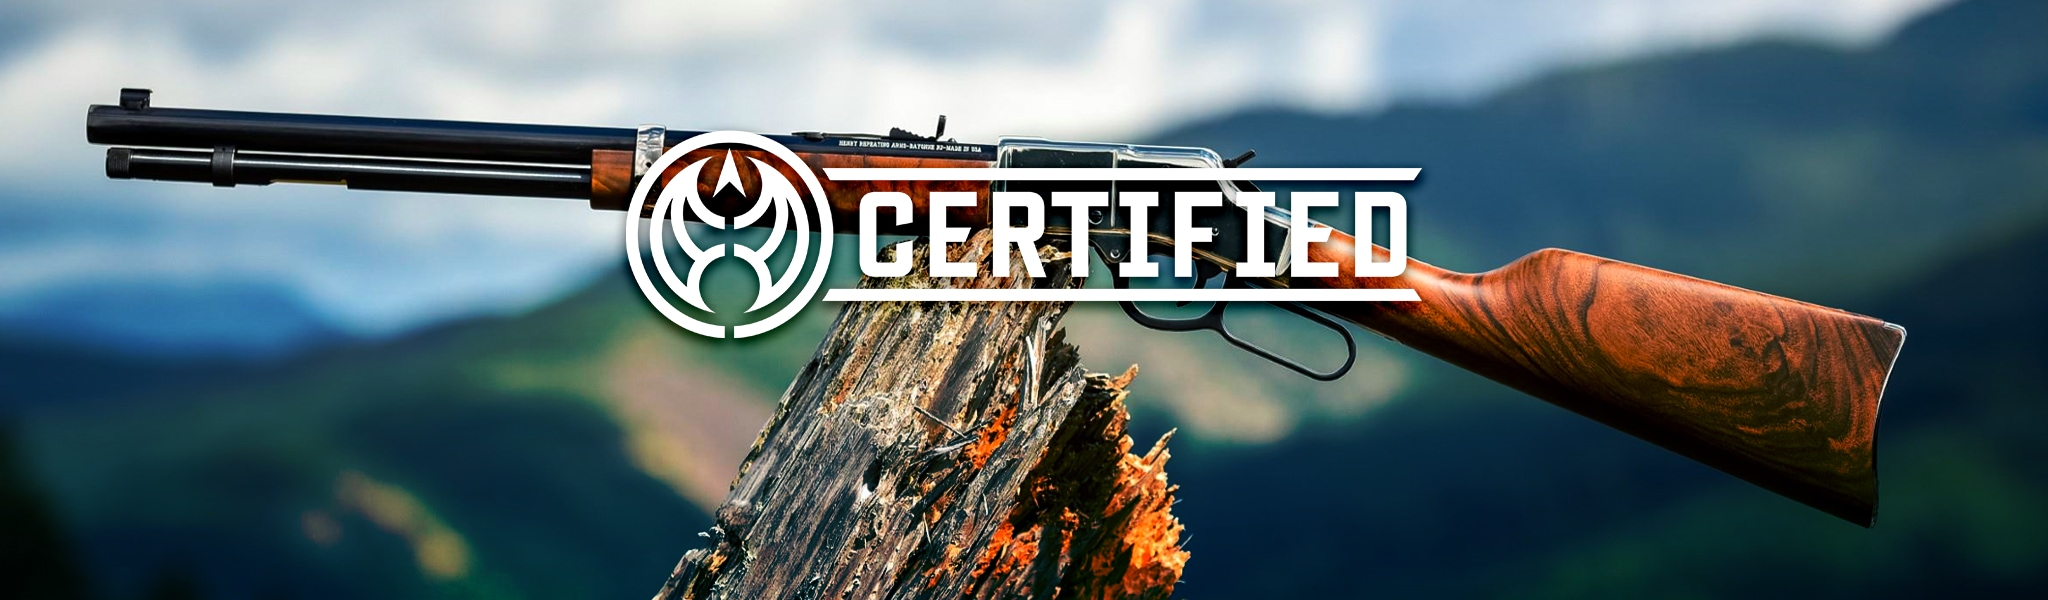 CERTIFIED USED GUNS BANNER